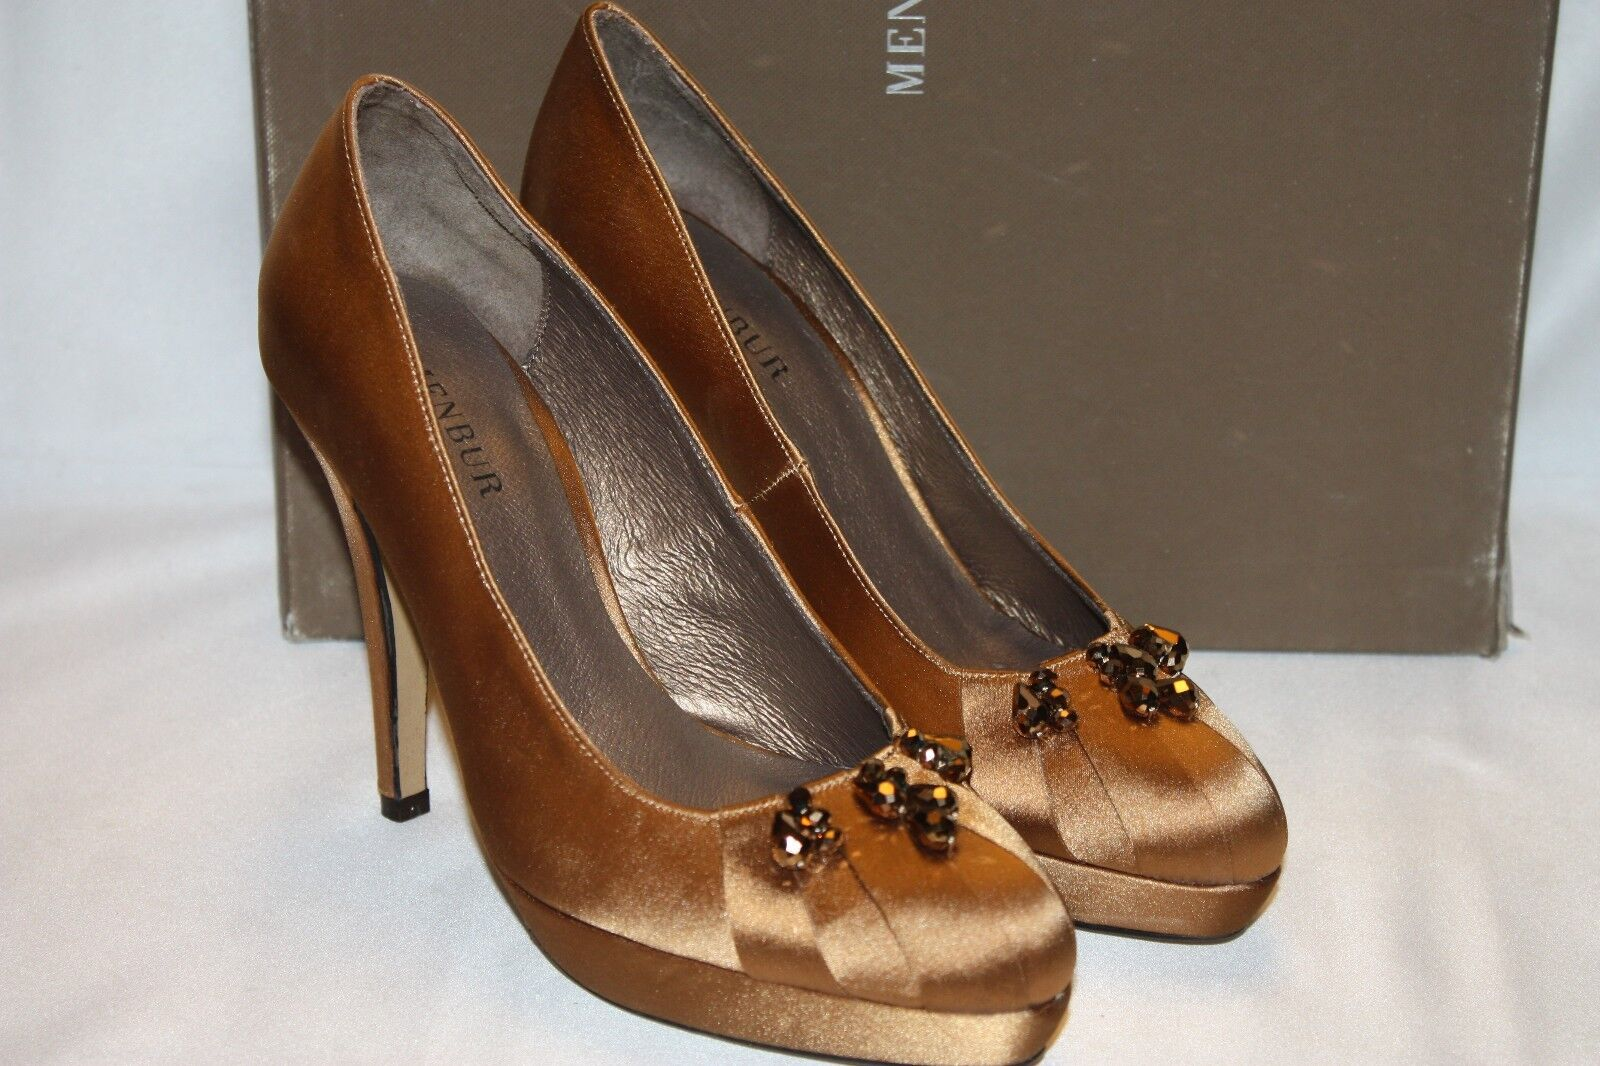 NEW  NIB  MENBUR Camel Gold Gold Gold Satin Heels Jeweled Pumps Sz 5.5 / EU36 a5762d